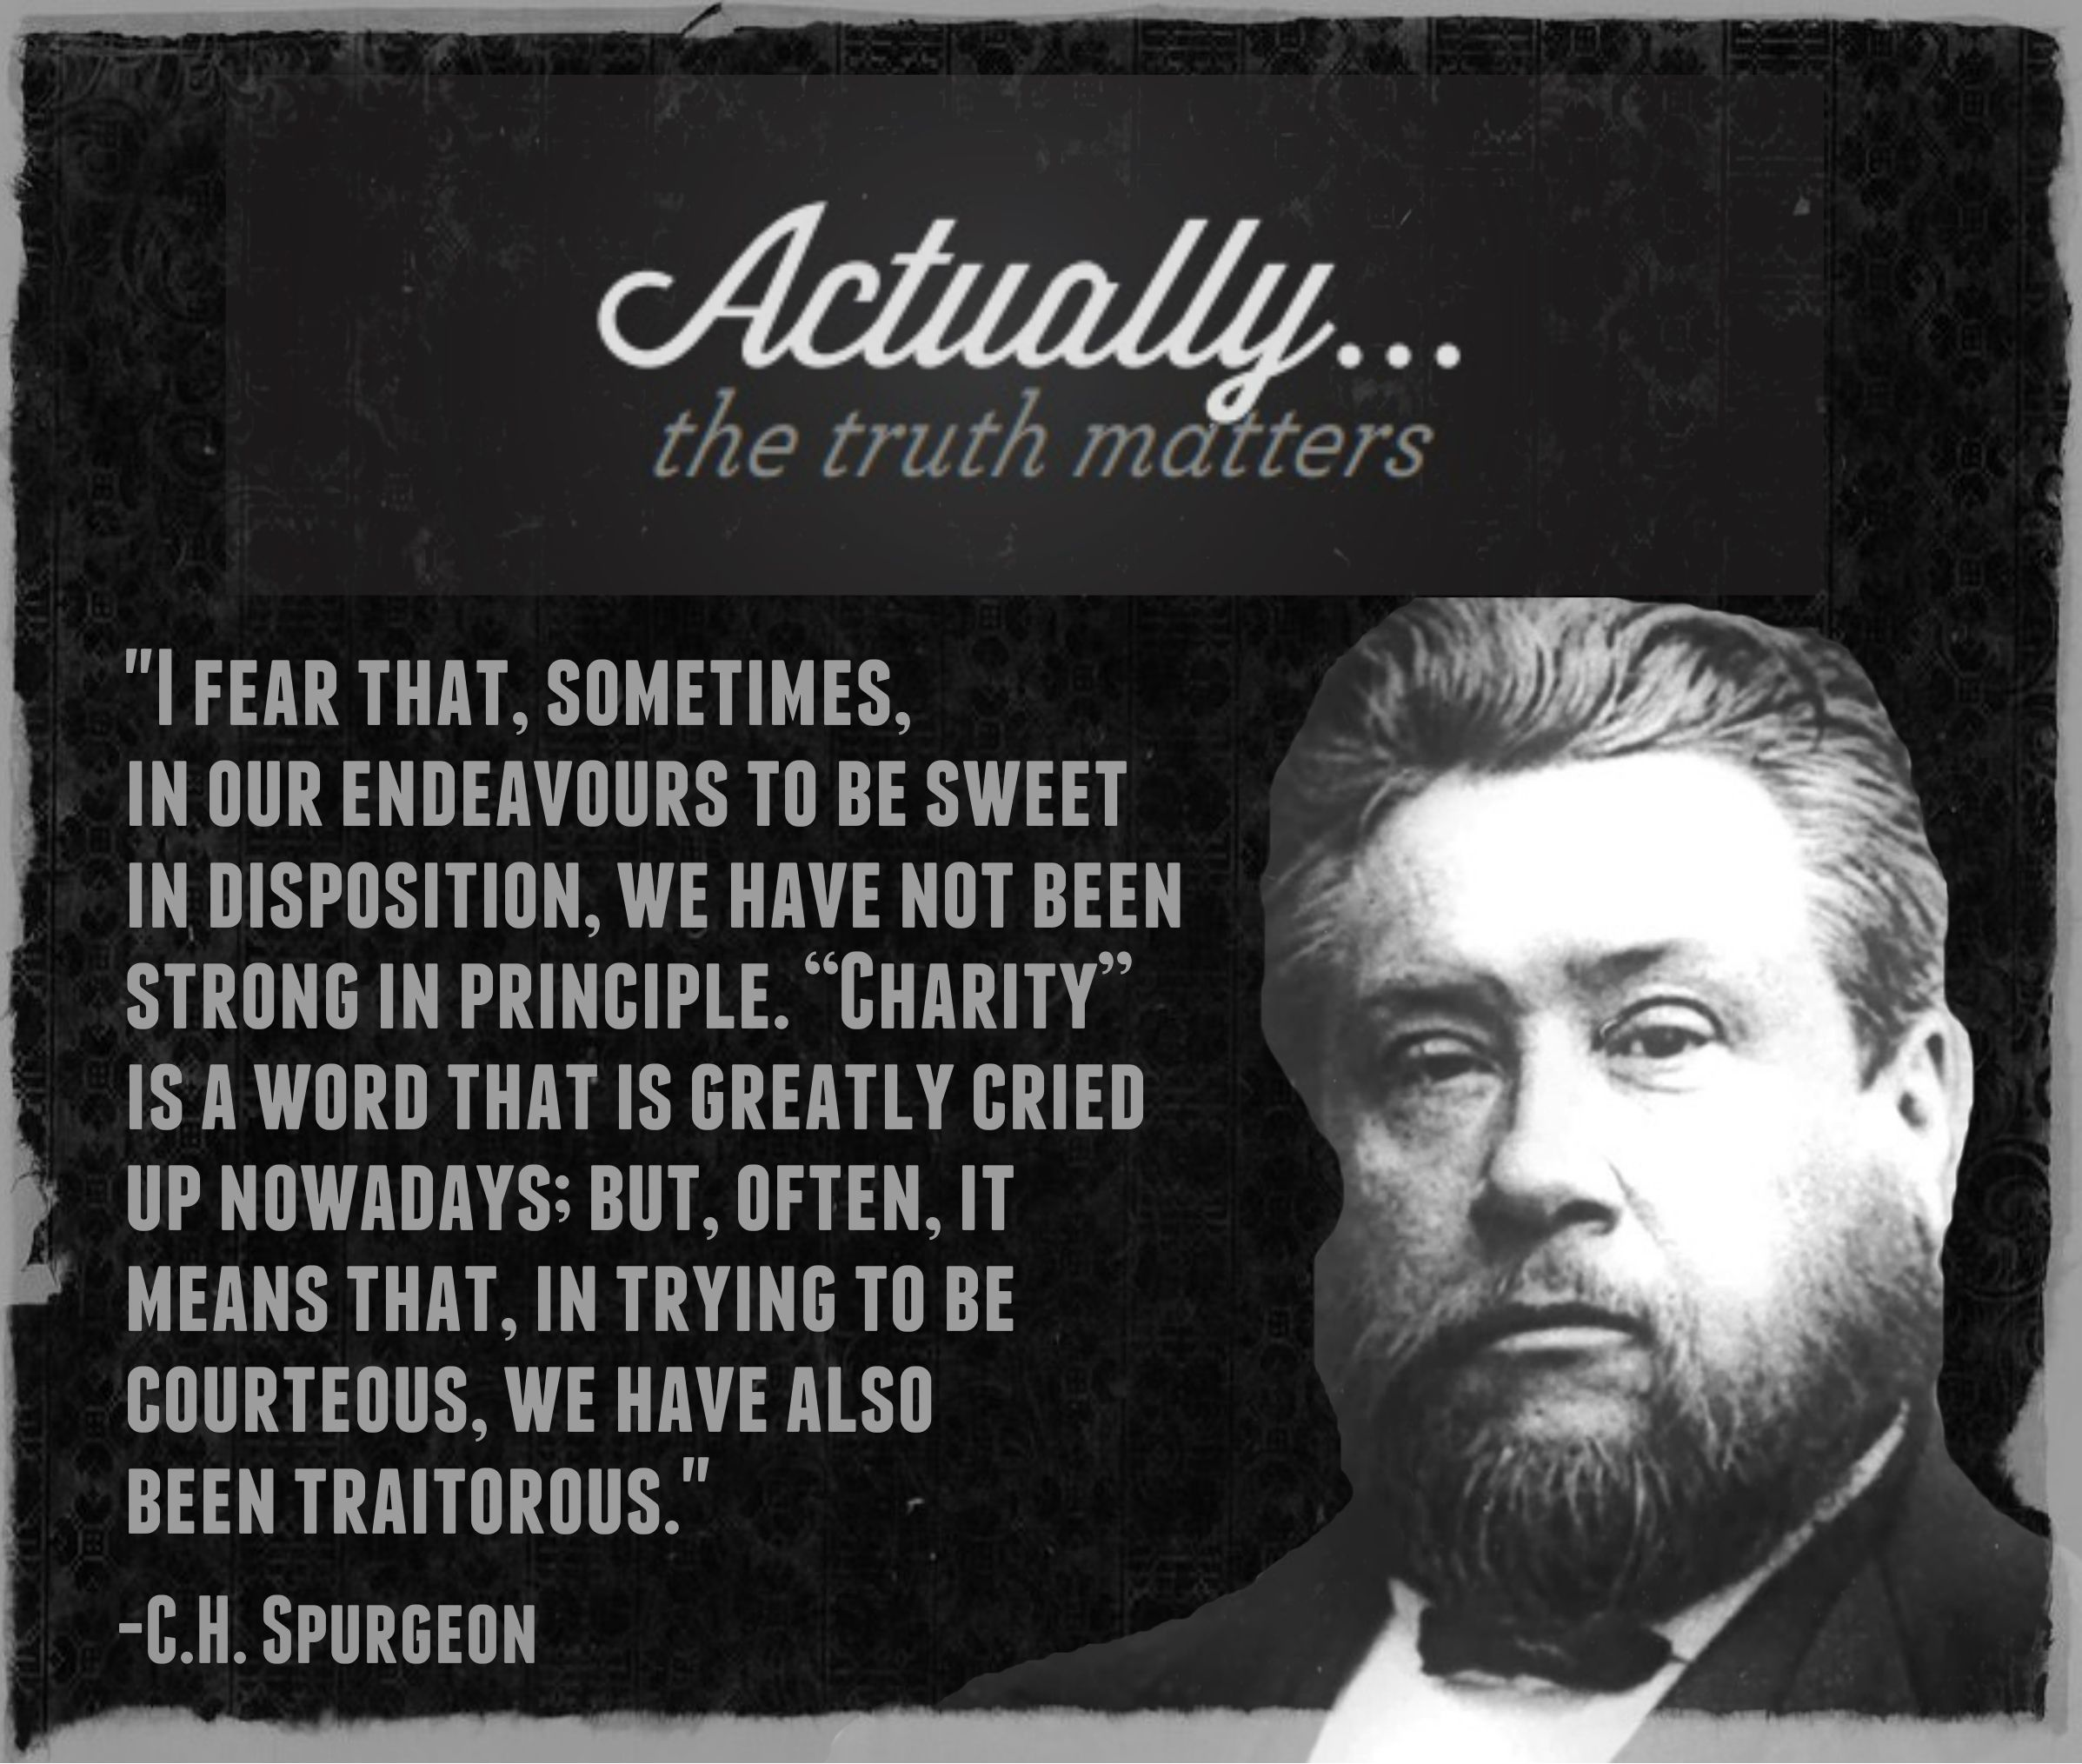 Pin By Mina Gloria On Spiritual Charles Spurgeon Quotes Bible Humor Inspirational Quotes Motivation